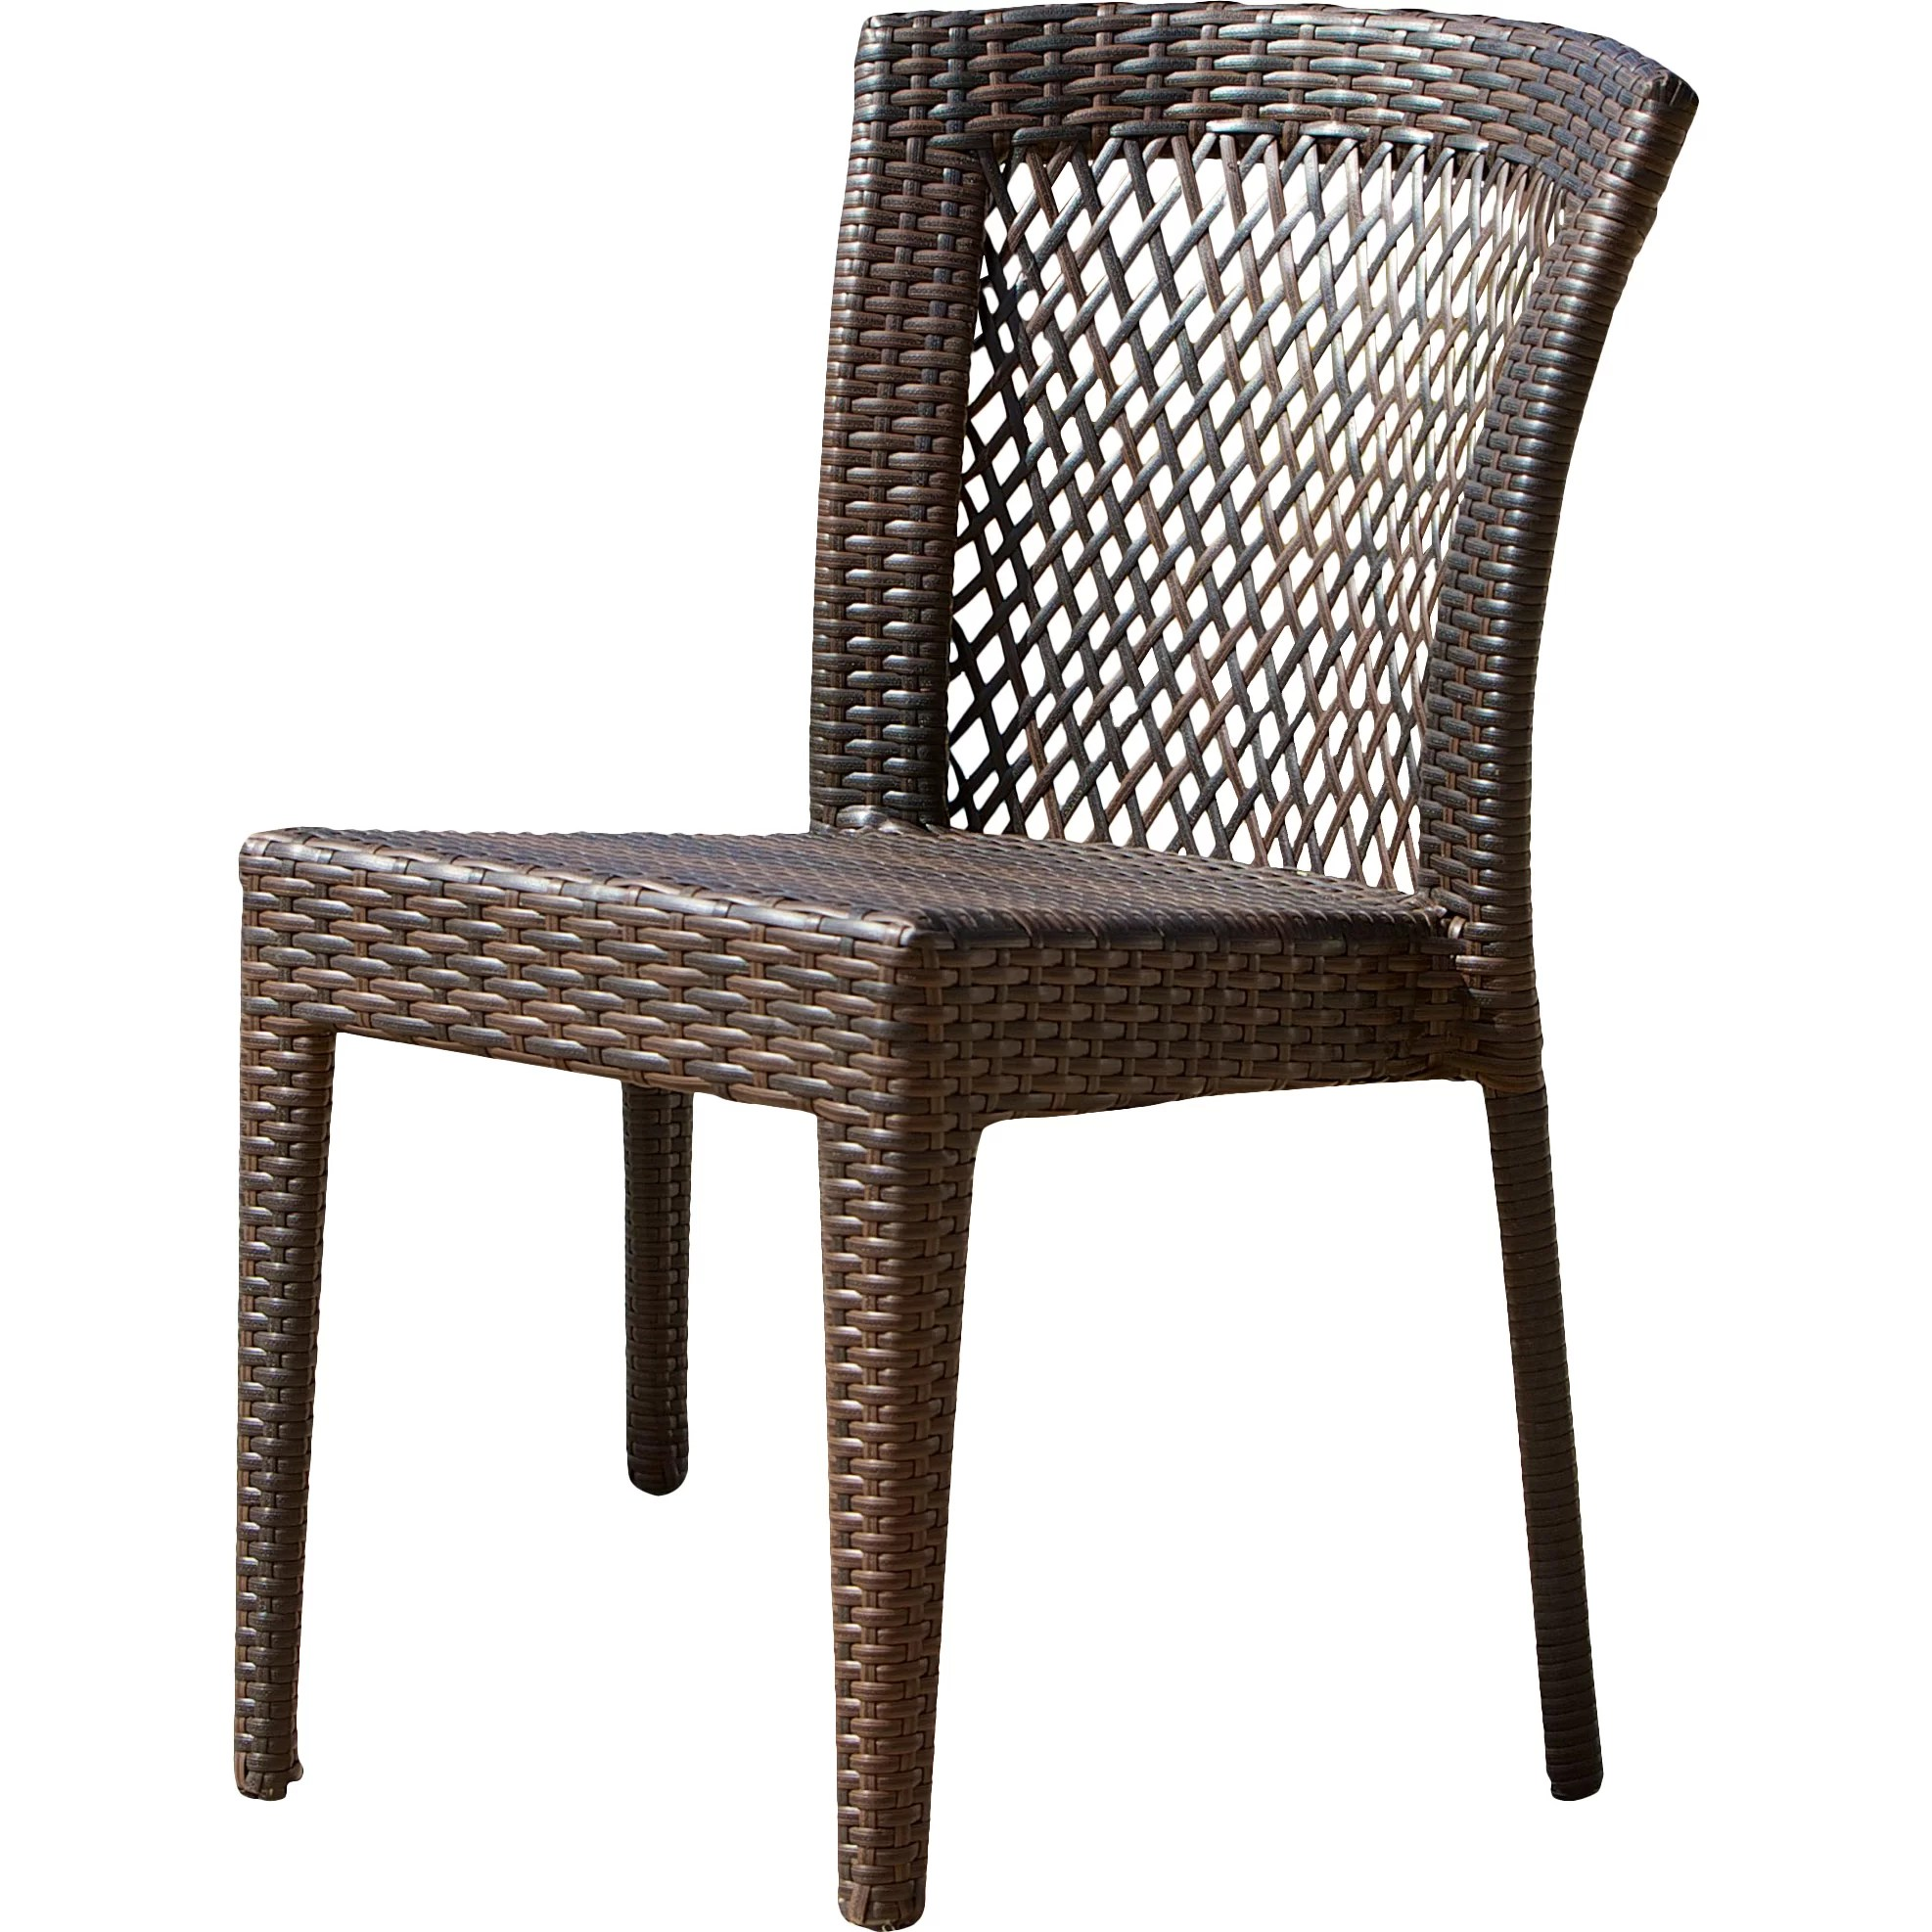 Wicker Patio Chair Dawson Outdoor Wicker Chair Wayfair